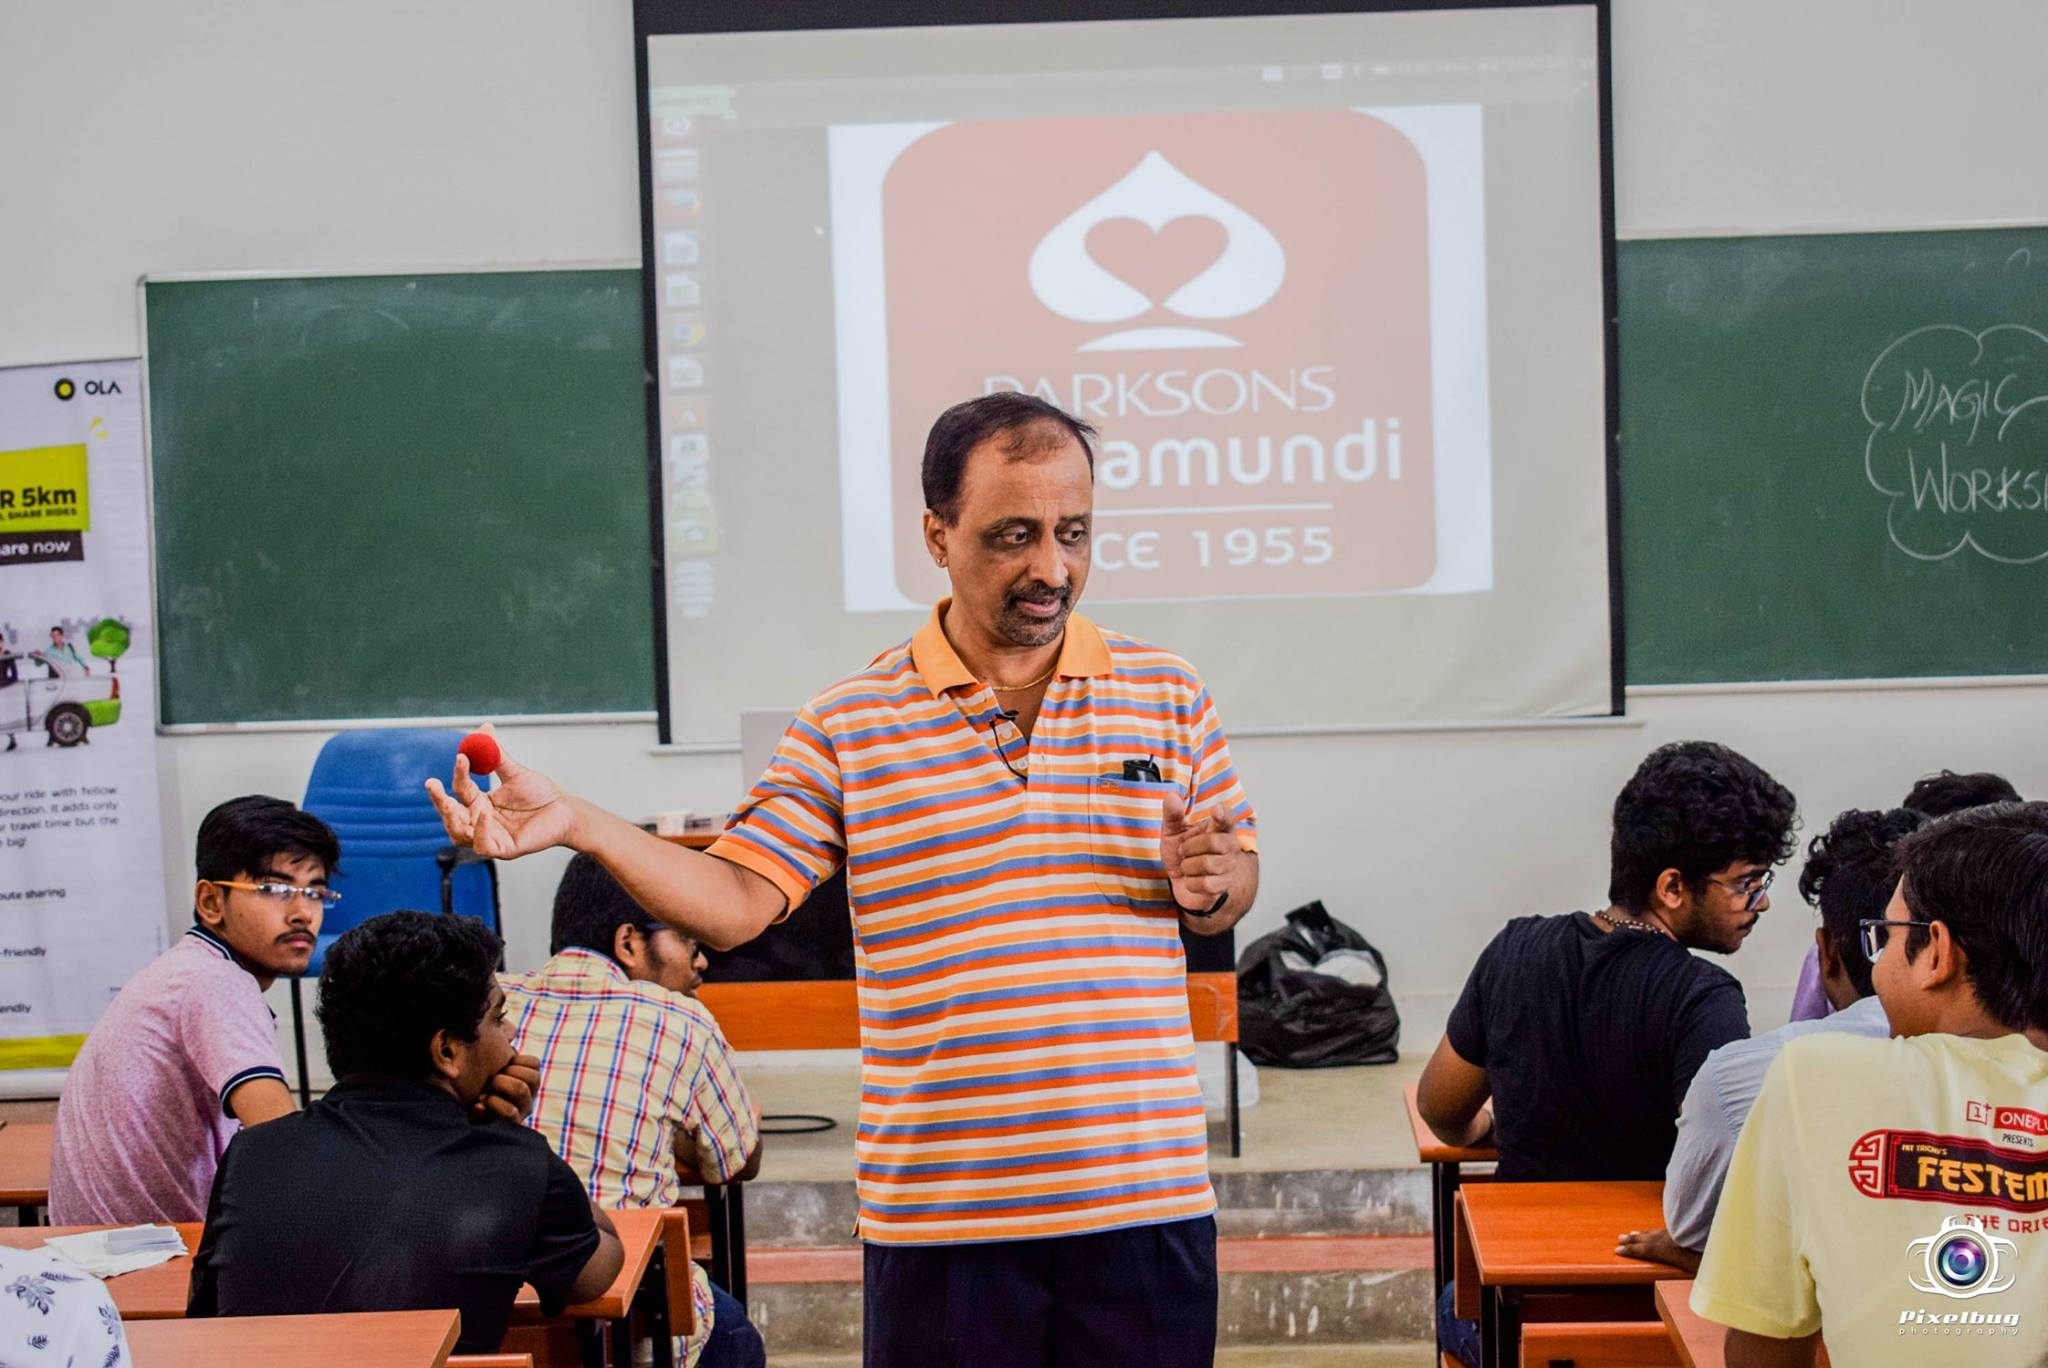 Magic workshop in Festember 2017 at NIT, Trichy